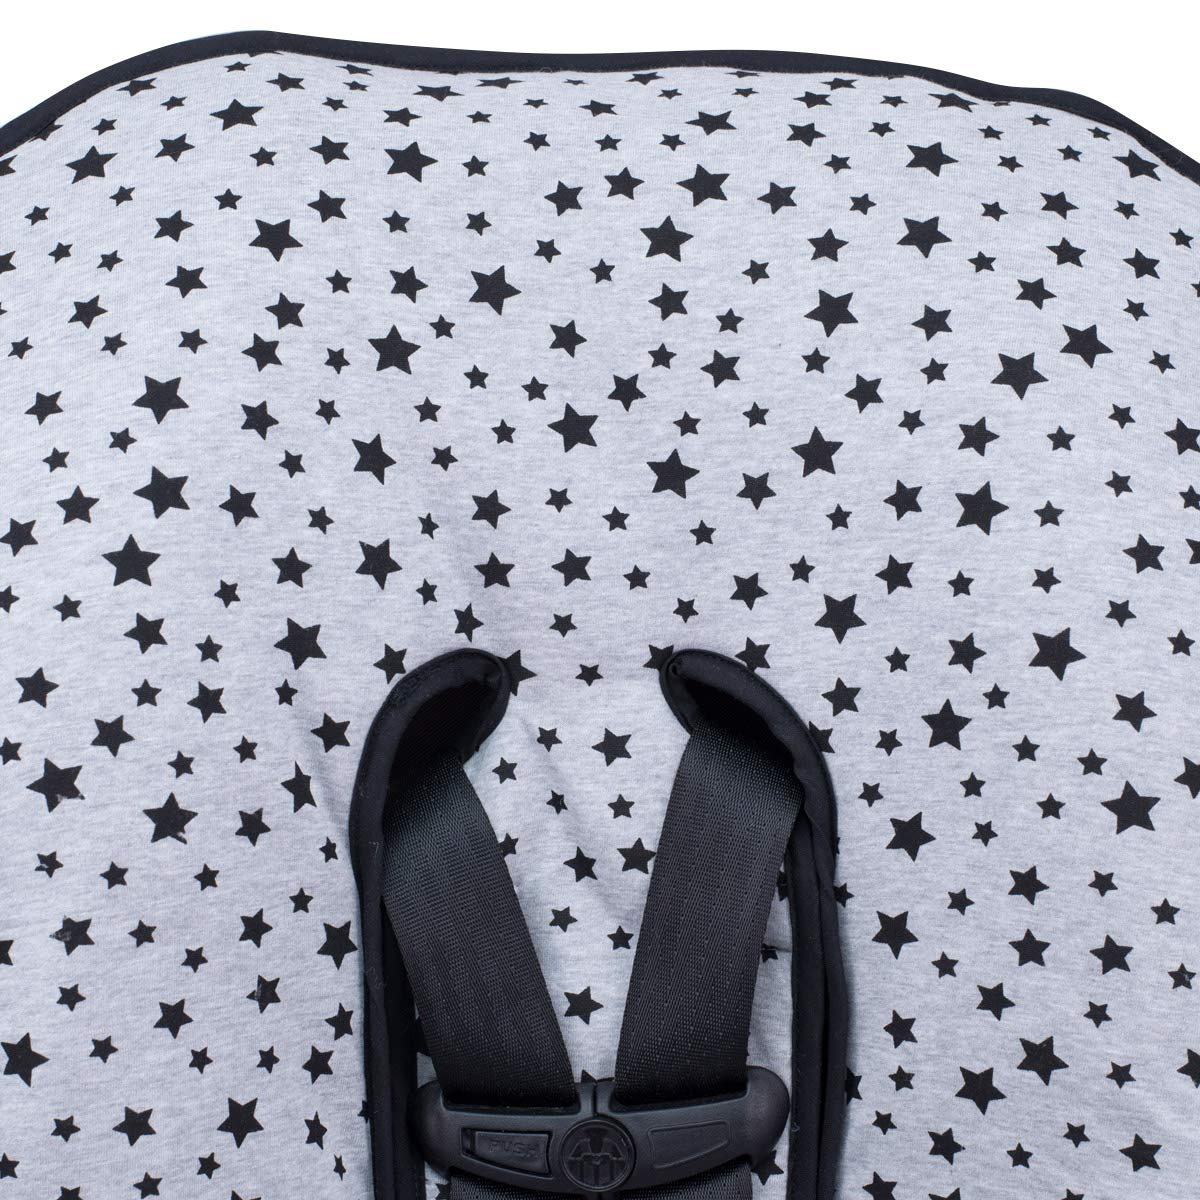 UNIVERSAL COVER PADDED GROUP 0 FOR INFANT AND CHILD CAR SEATS JANABEBE/® Raccoon